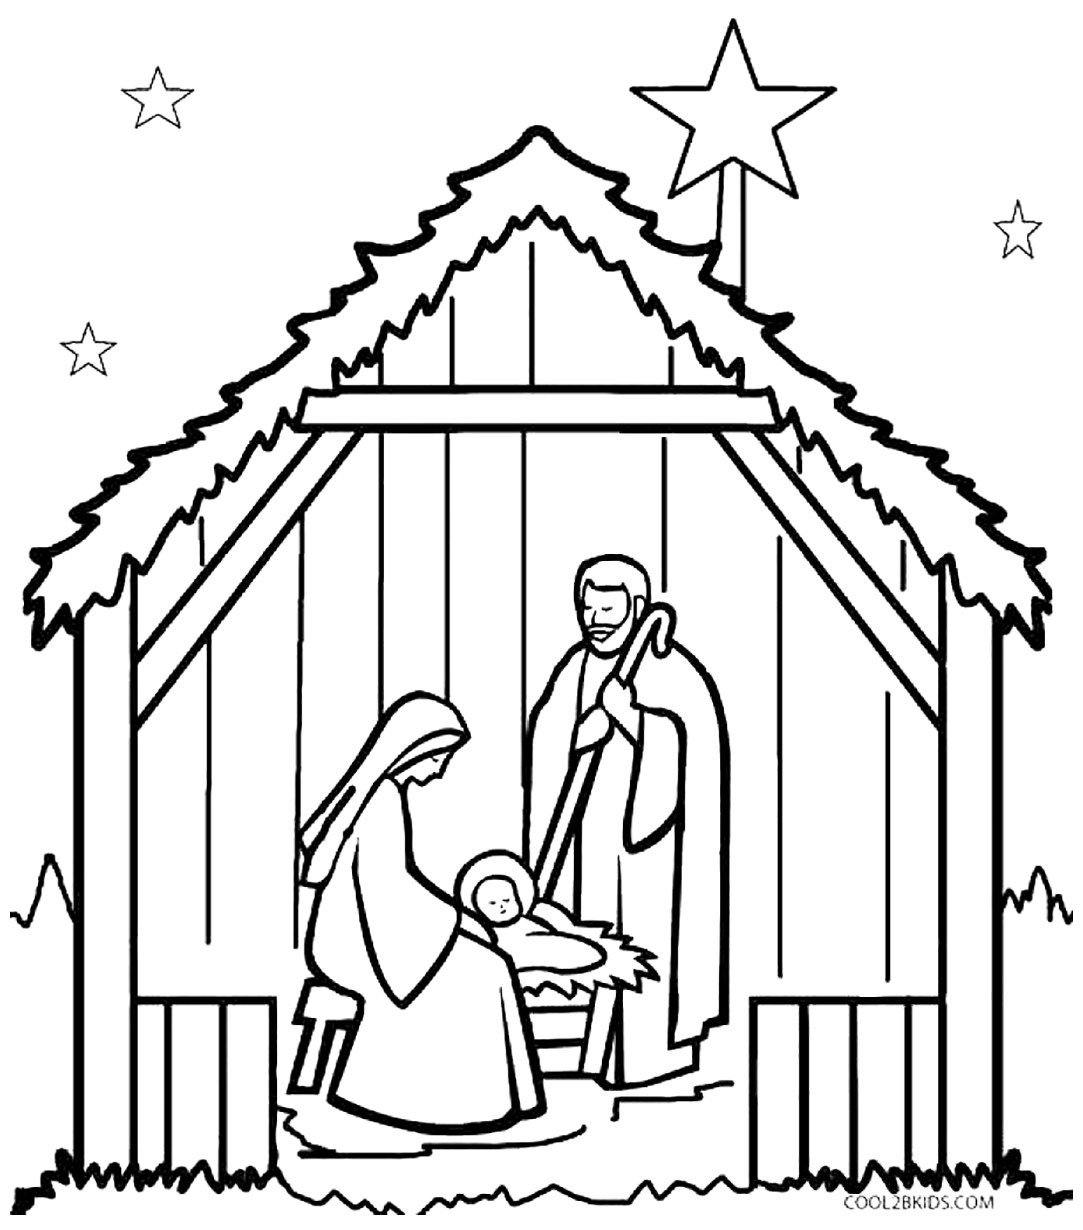 1083x1230 Free Christian Coloring Pages For Young And Old Children Level 2